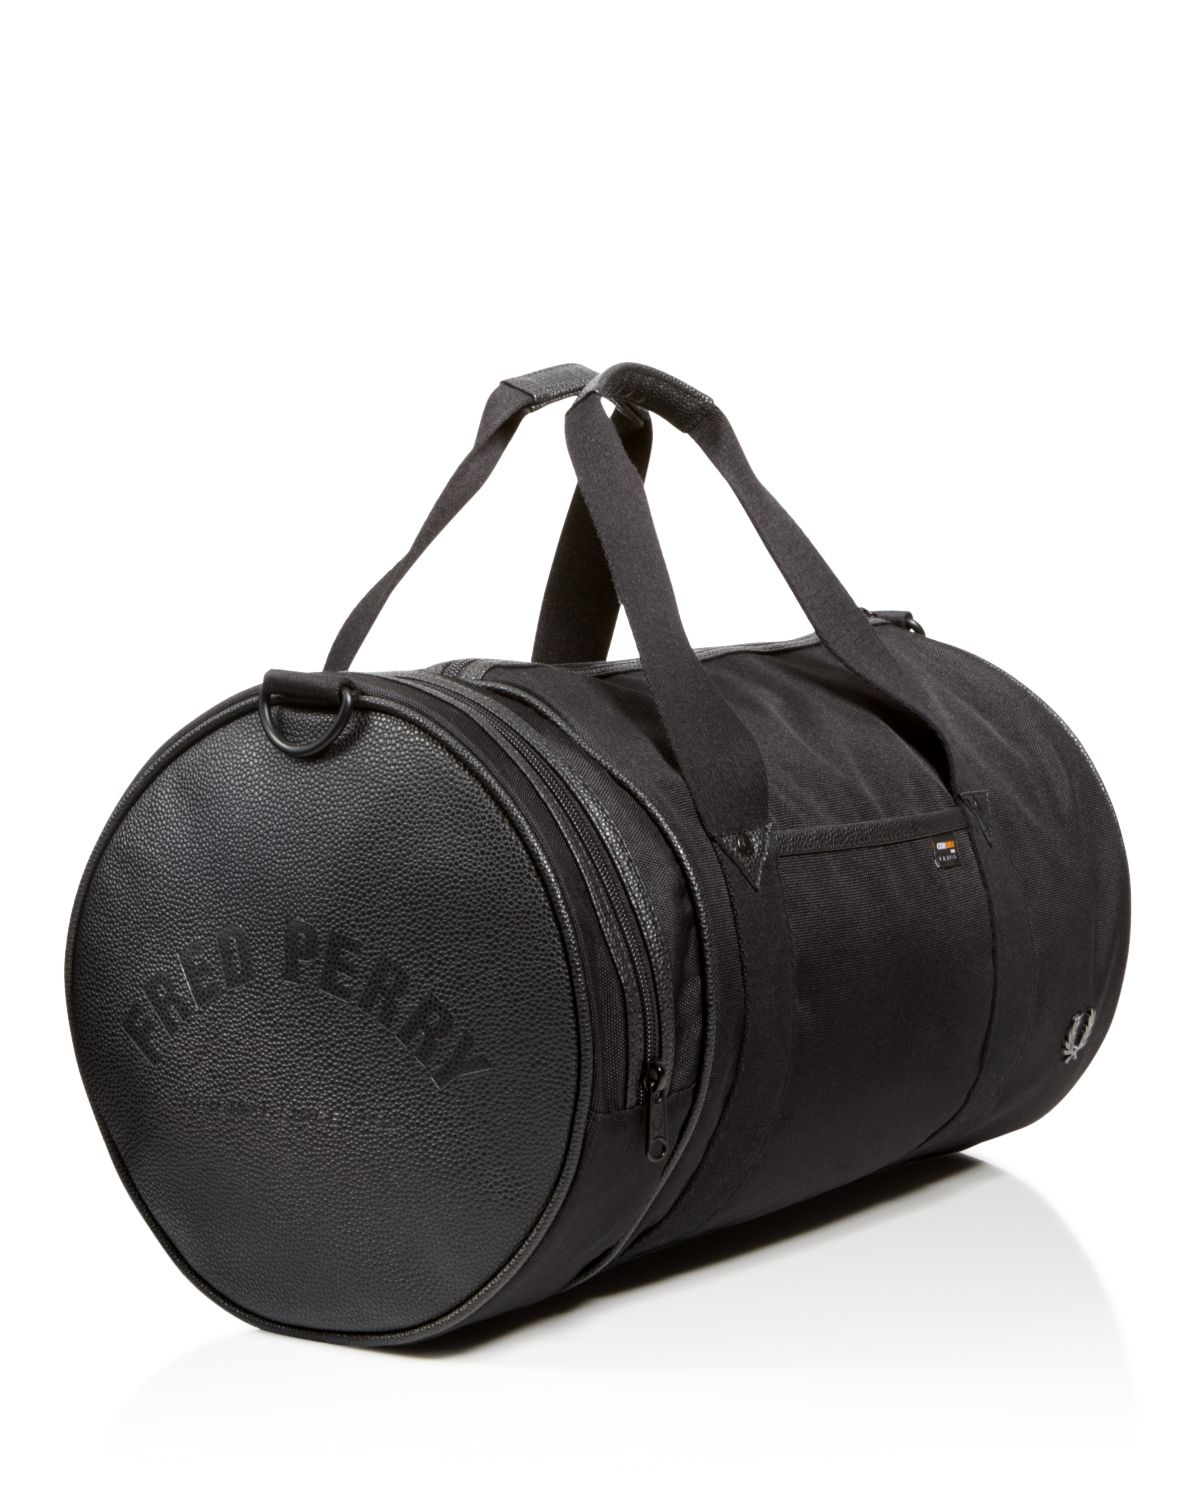 Fred Perry Men's Sports Canvas Barrel Bag. by Fred Perry. $ - $ $ 73 $ 79 30 Prime. FREE Shipping on eligible orders. Some sizes/colors are Prime eligible. 5 out of 5 stars 1. Banjo Brothers Canvas Barrel Bag. by Banjo Brothers. $ $ 27 99 Prime. FREE Shipping on eligible orders.